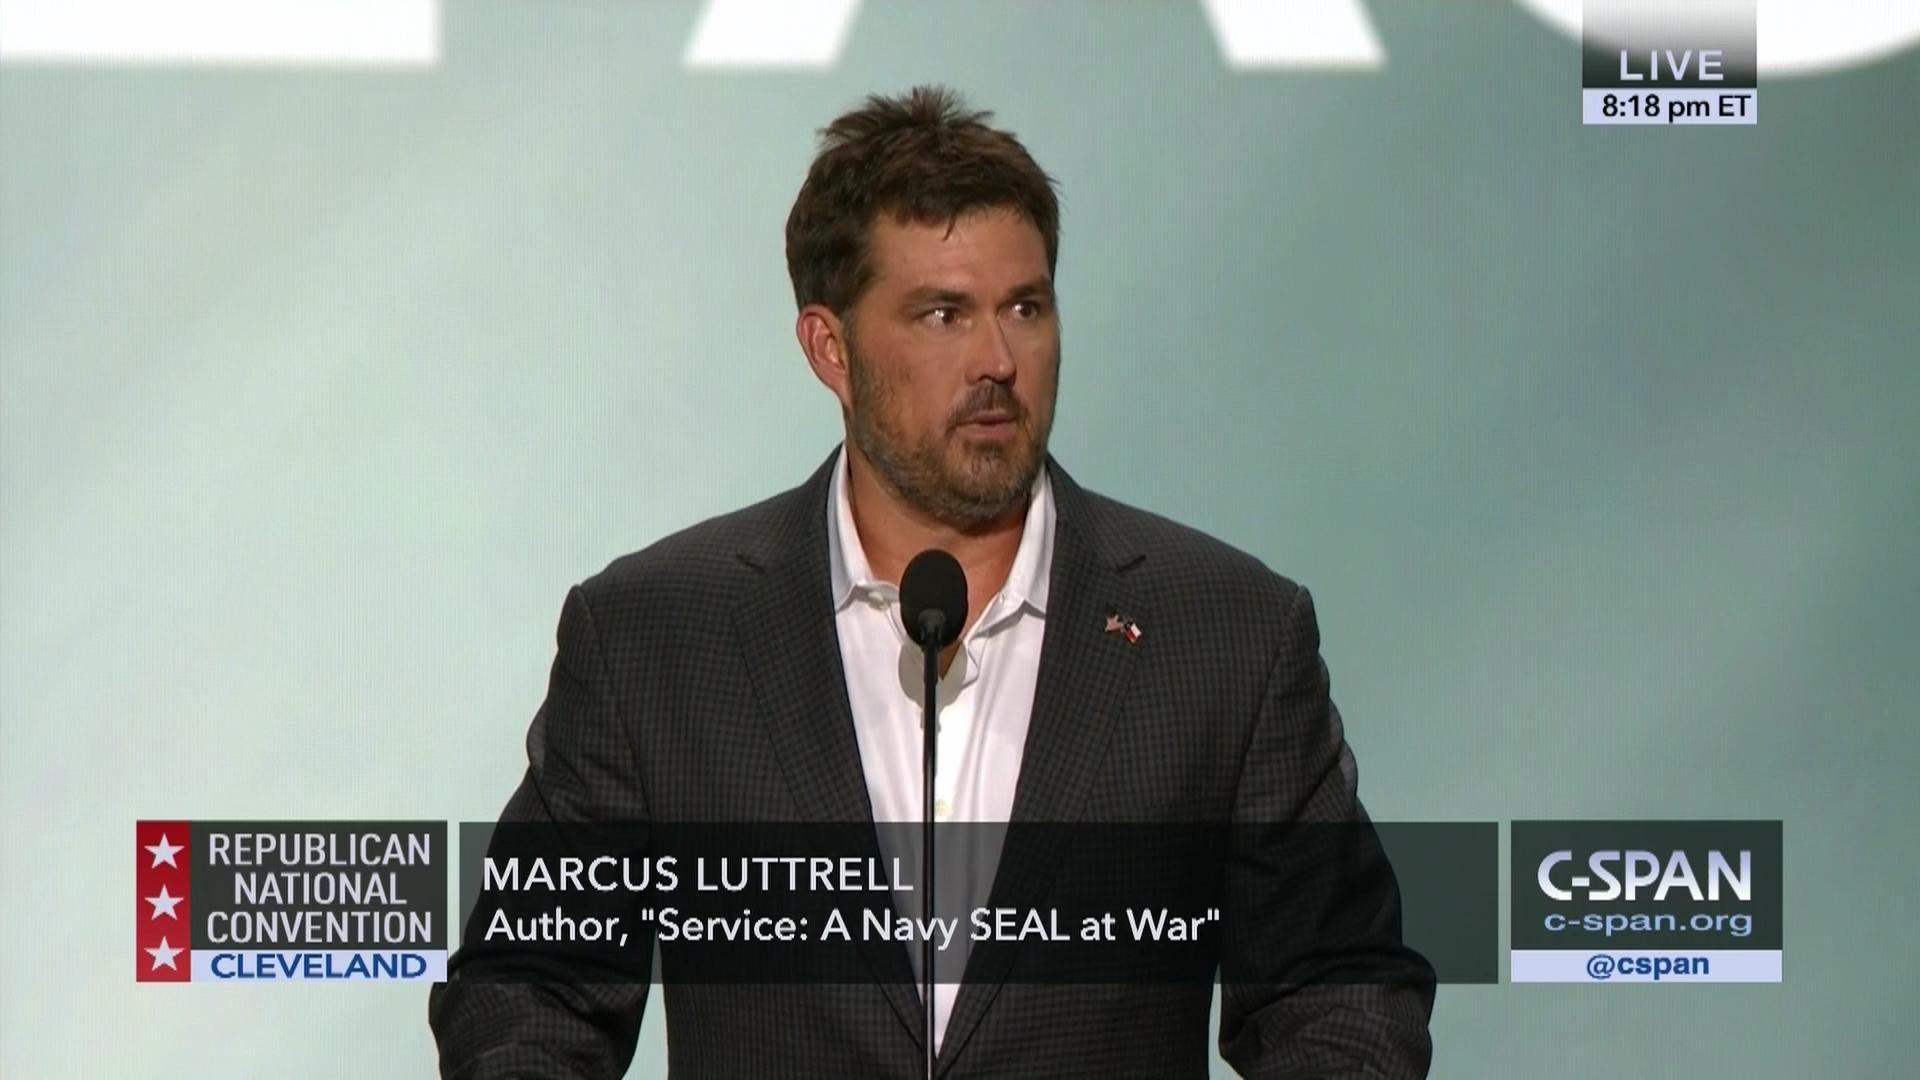 adfe1ee3b2 Marcus Luttrell